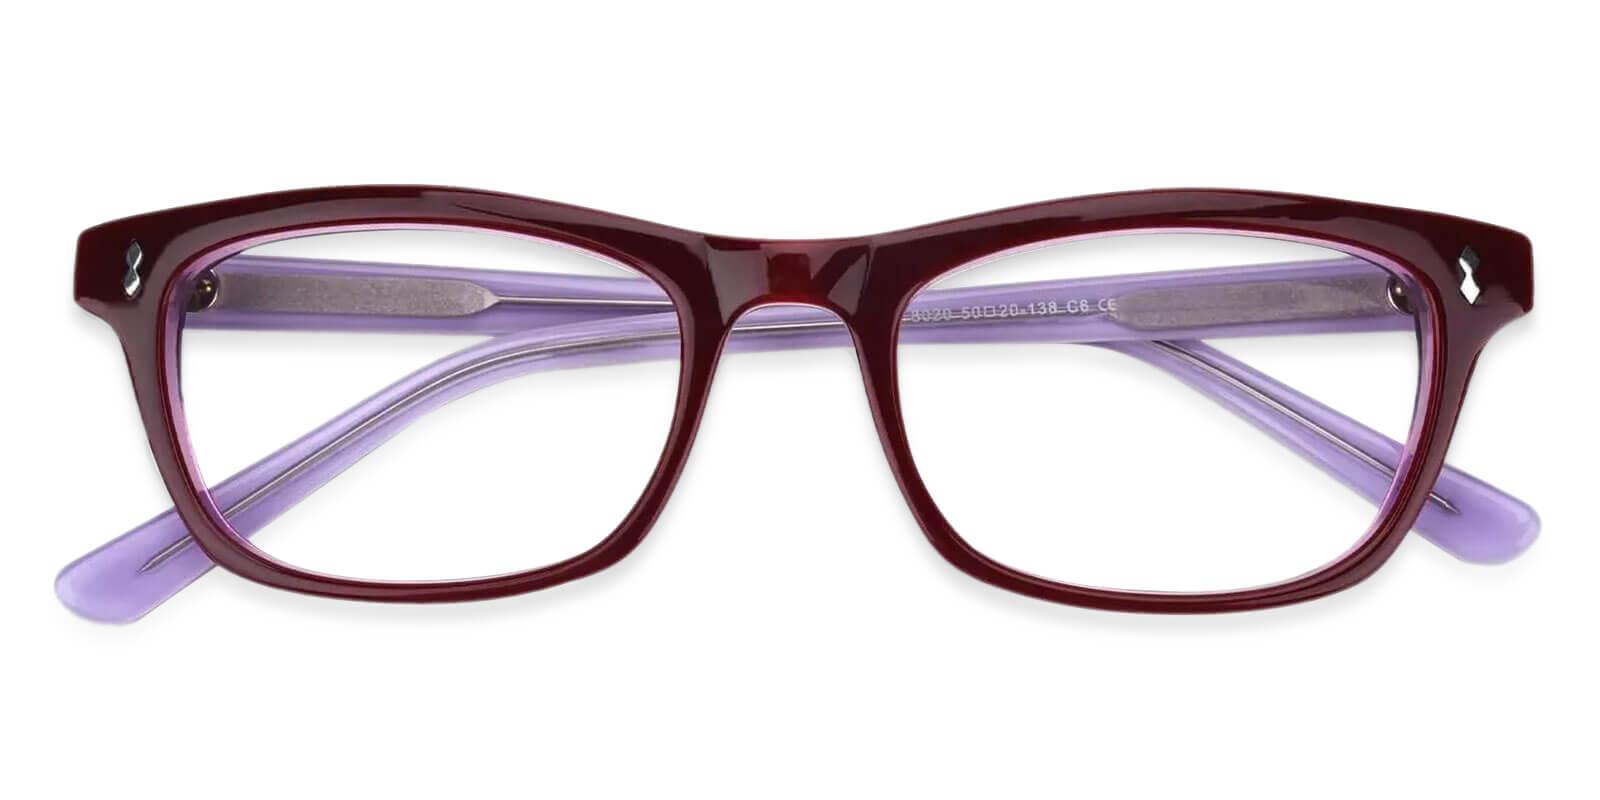 Leaf Purple Acetate Eyeglasses , UniversalBridgeFit Frames from ABBE Glasses